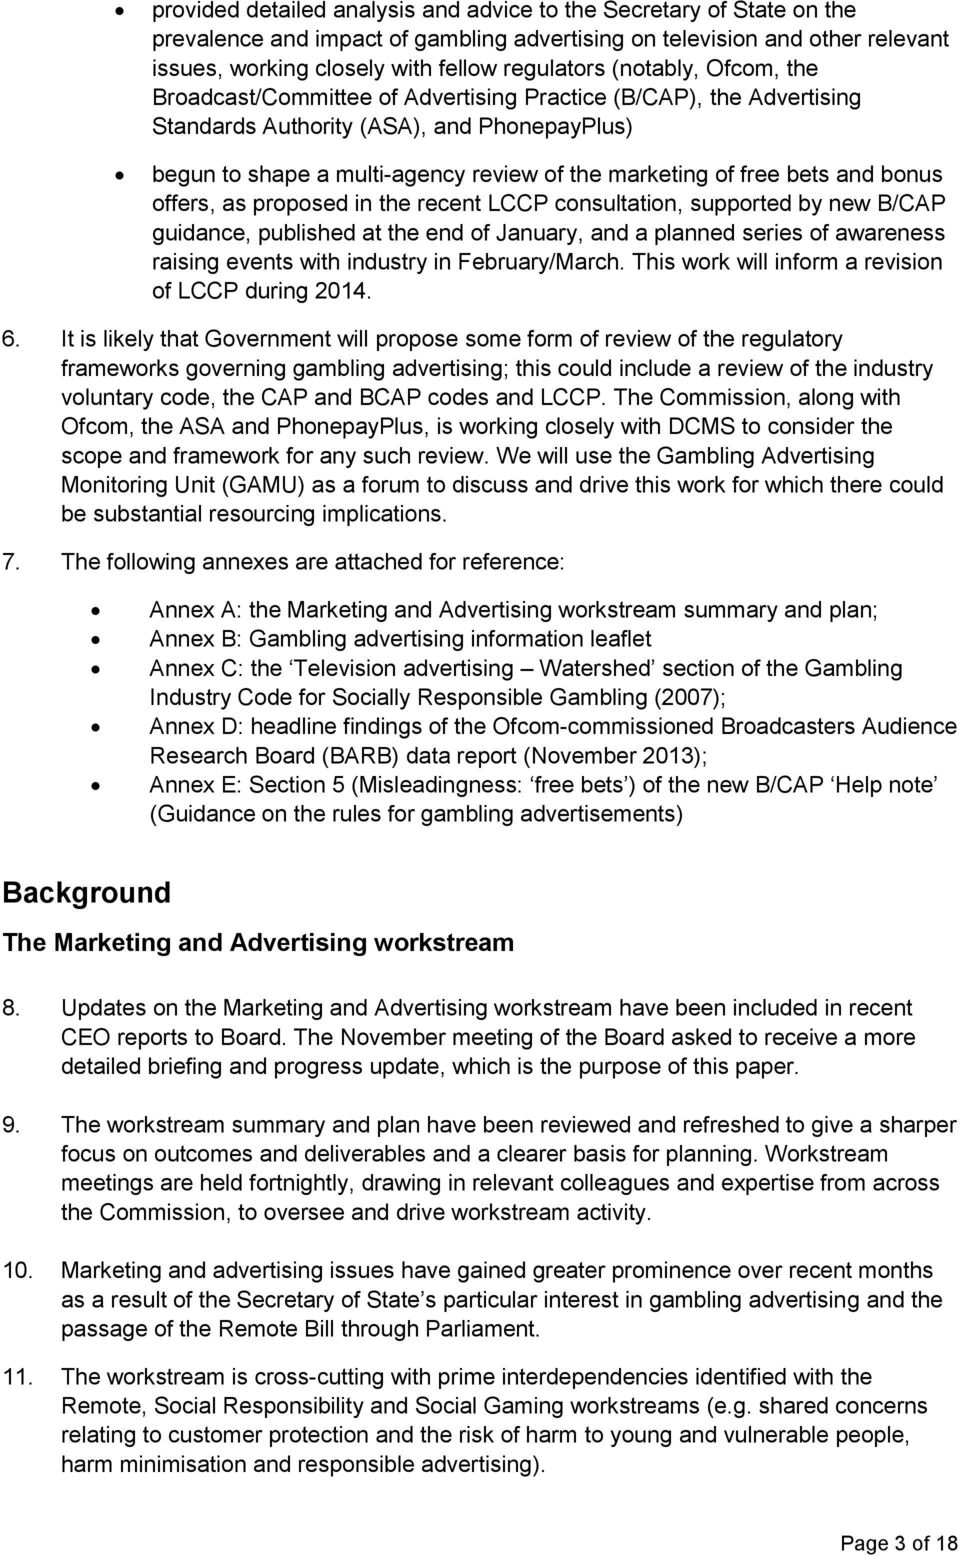 bets and bonus offers, as proposed in the recent LCCP consultation, supported by new B/CAP guidance, published at the end of January, and a planned series of awareness raising events with industry in